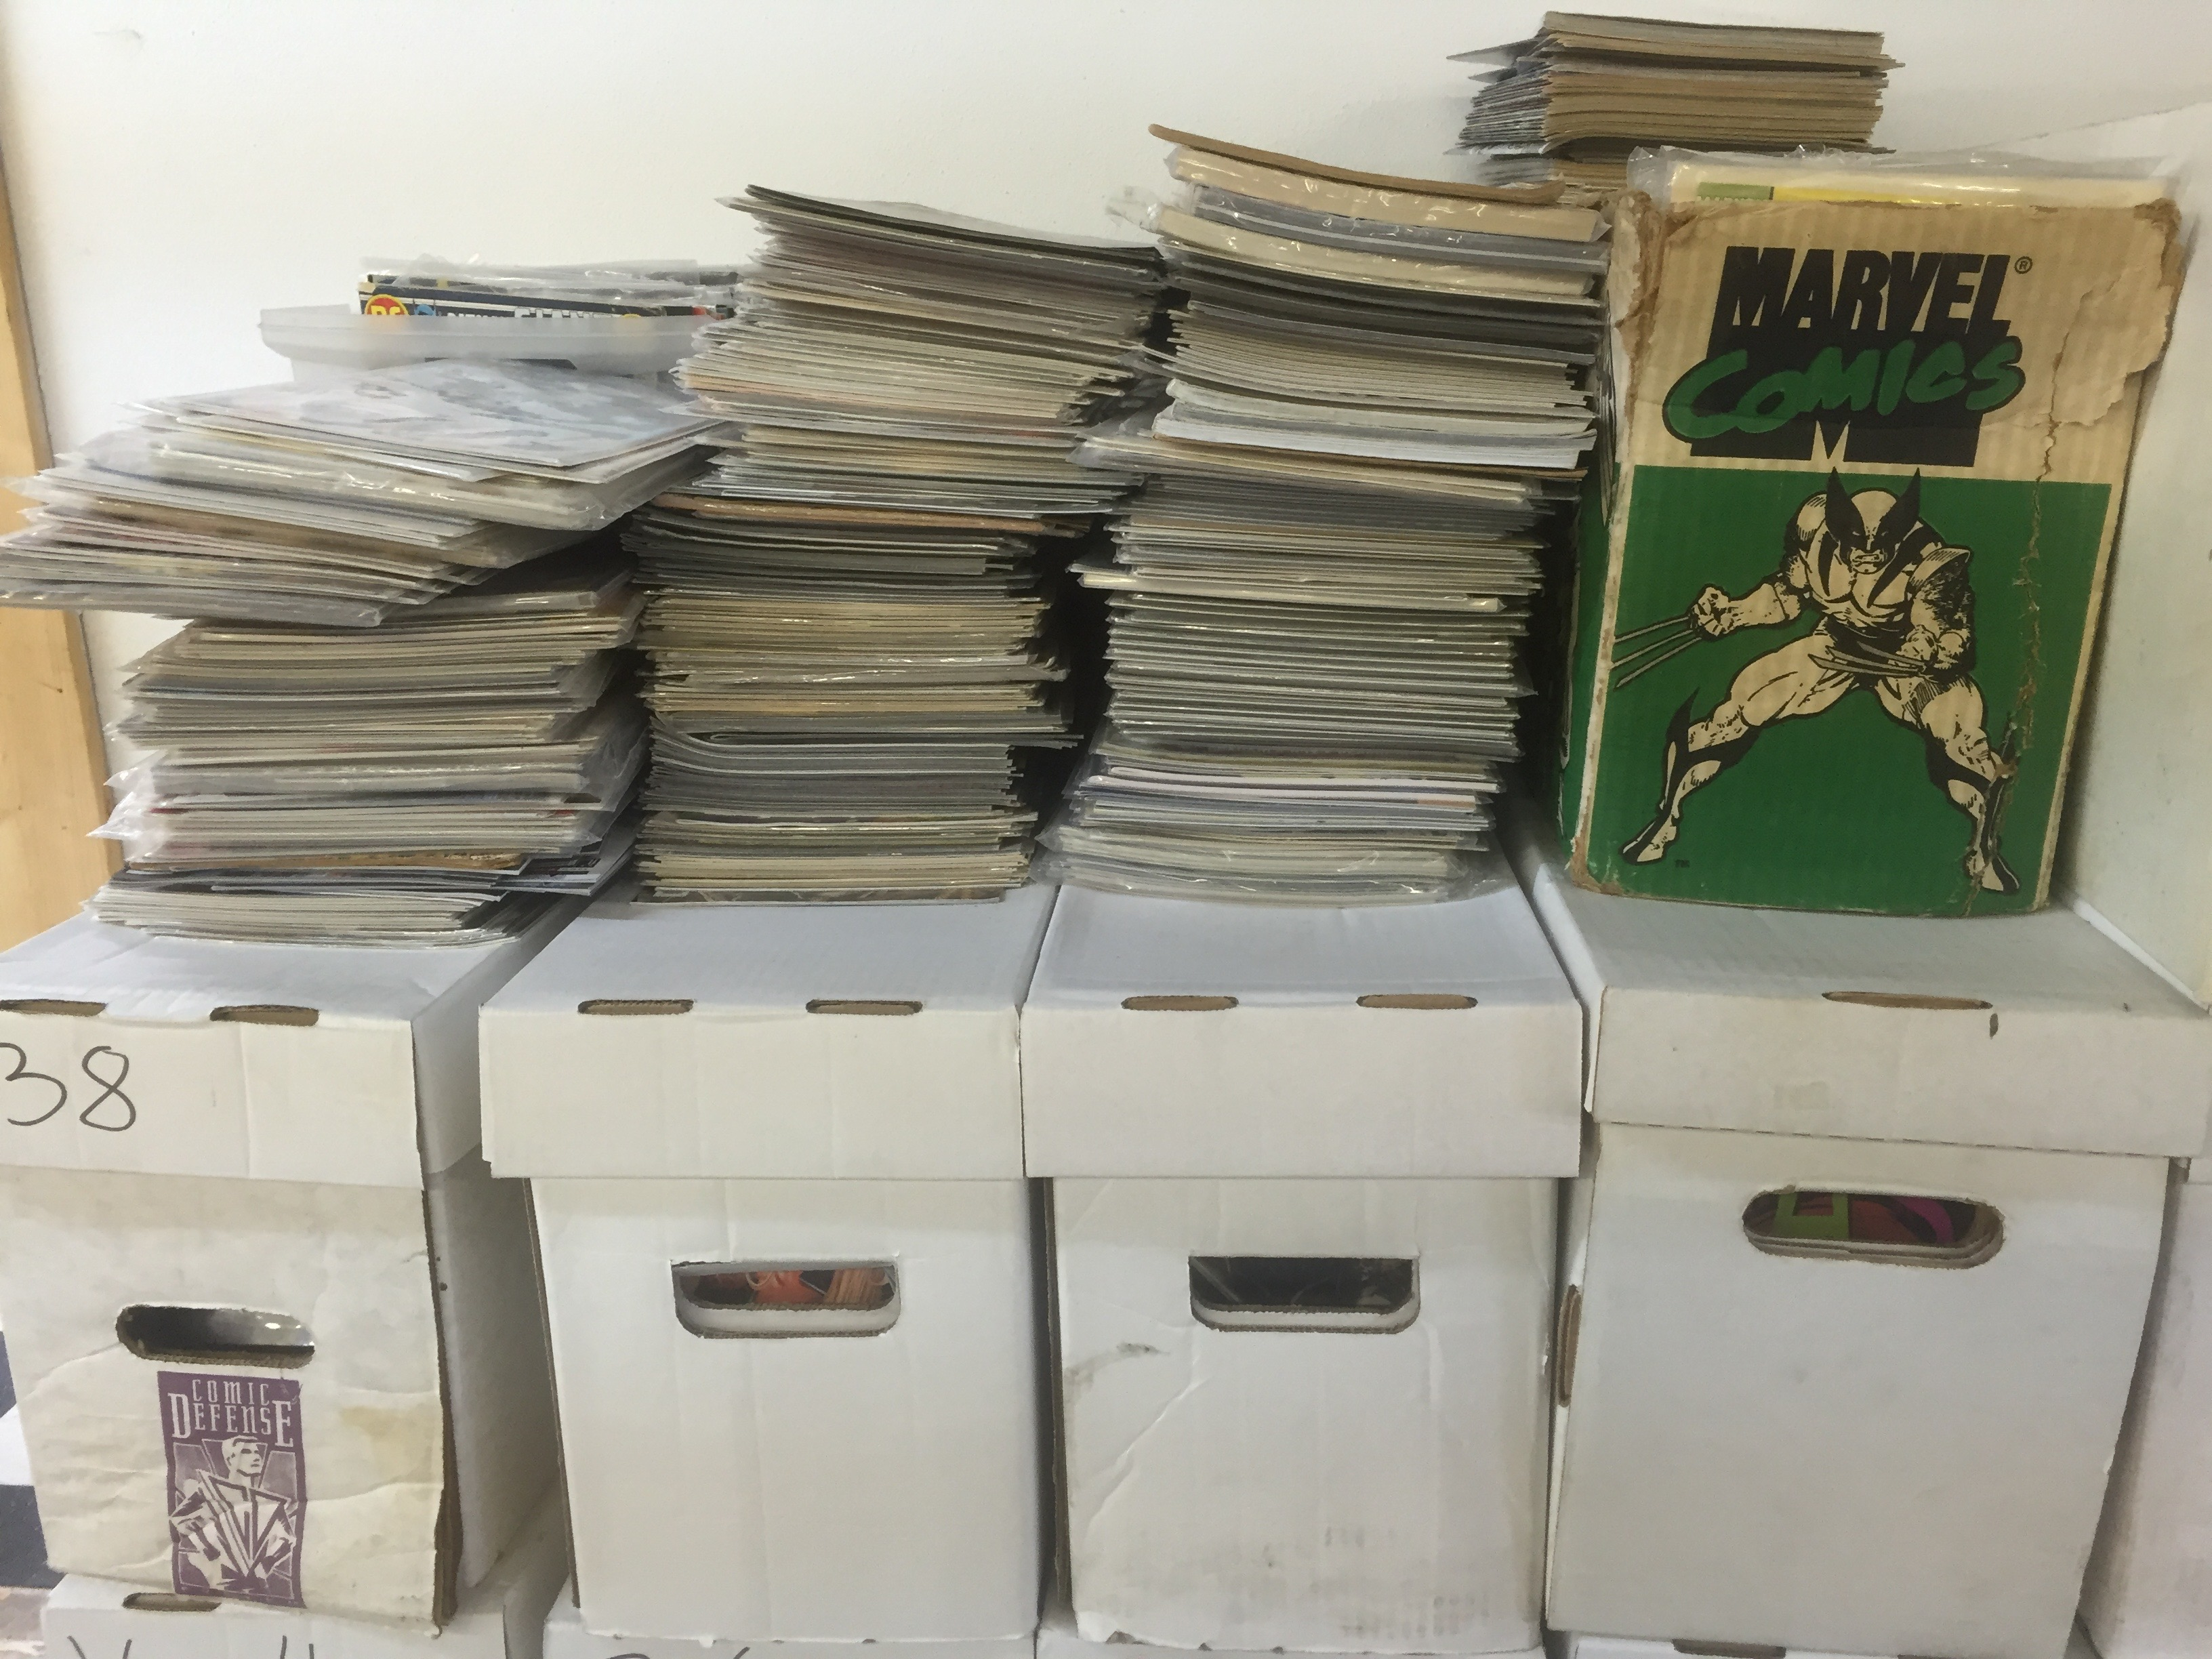 "<span  class=""uc_style_uc_tiles_grid_image_elementor_uc_items_attribute_title"" style=""color:#ffffff;"">Comic Book Short Boxes at Mammoth Comics</span>"